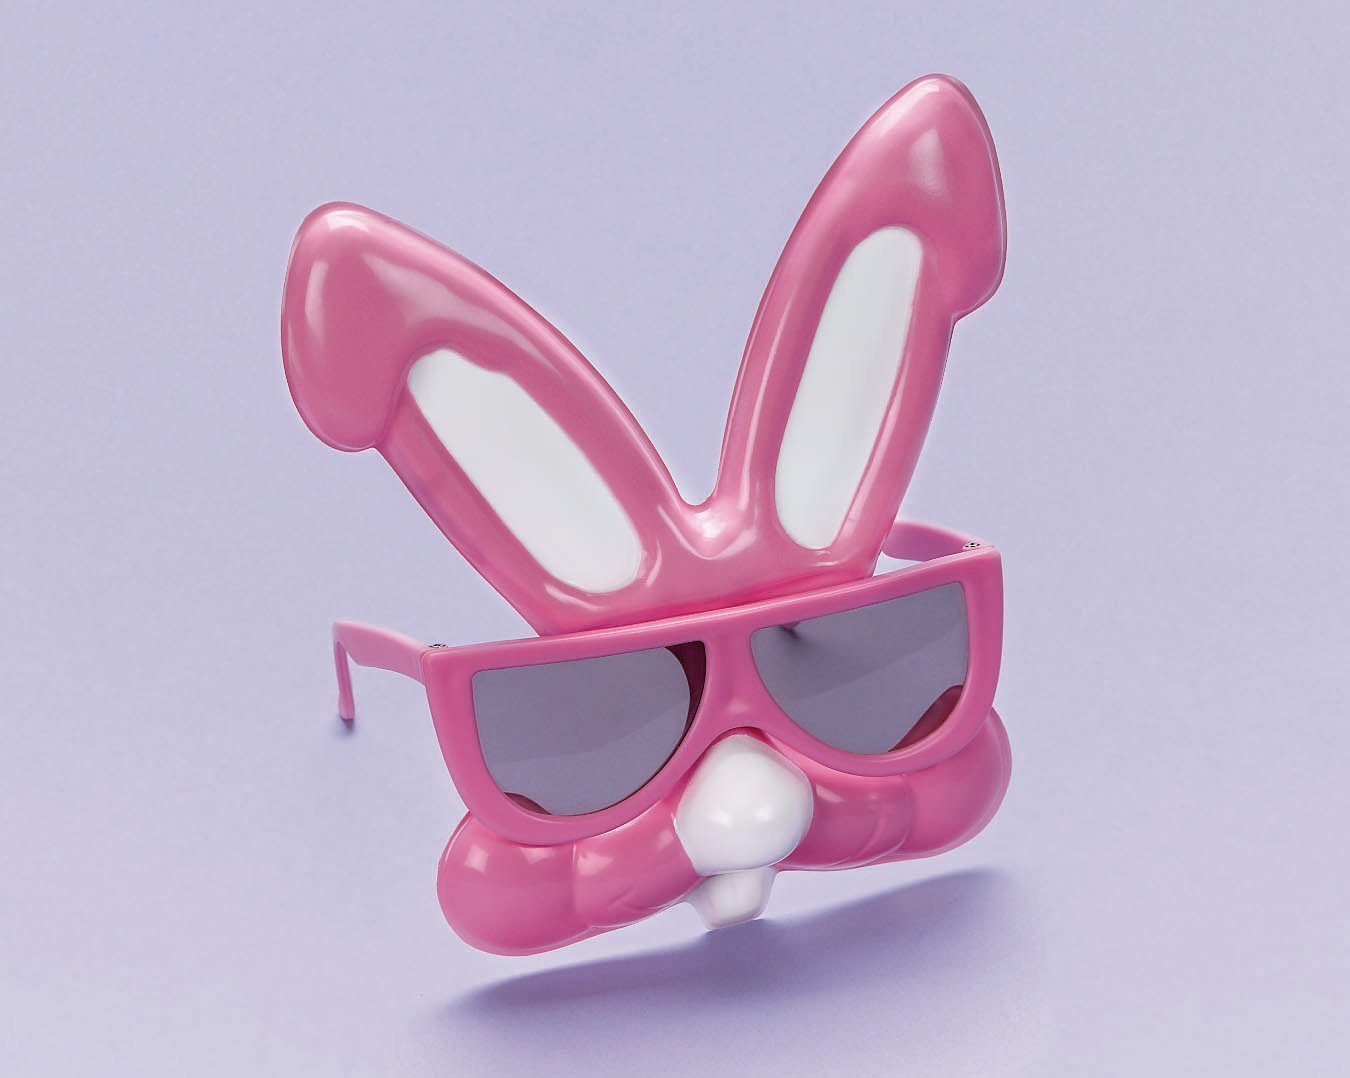 Rabbit Sunglasses Asst. (1 count)